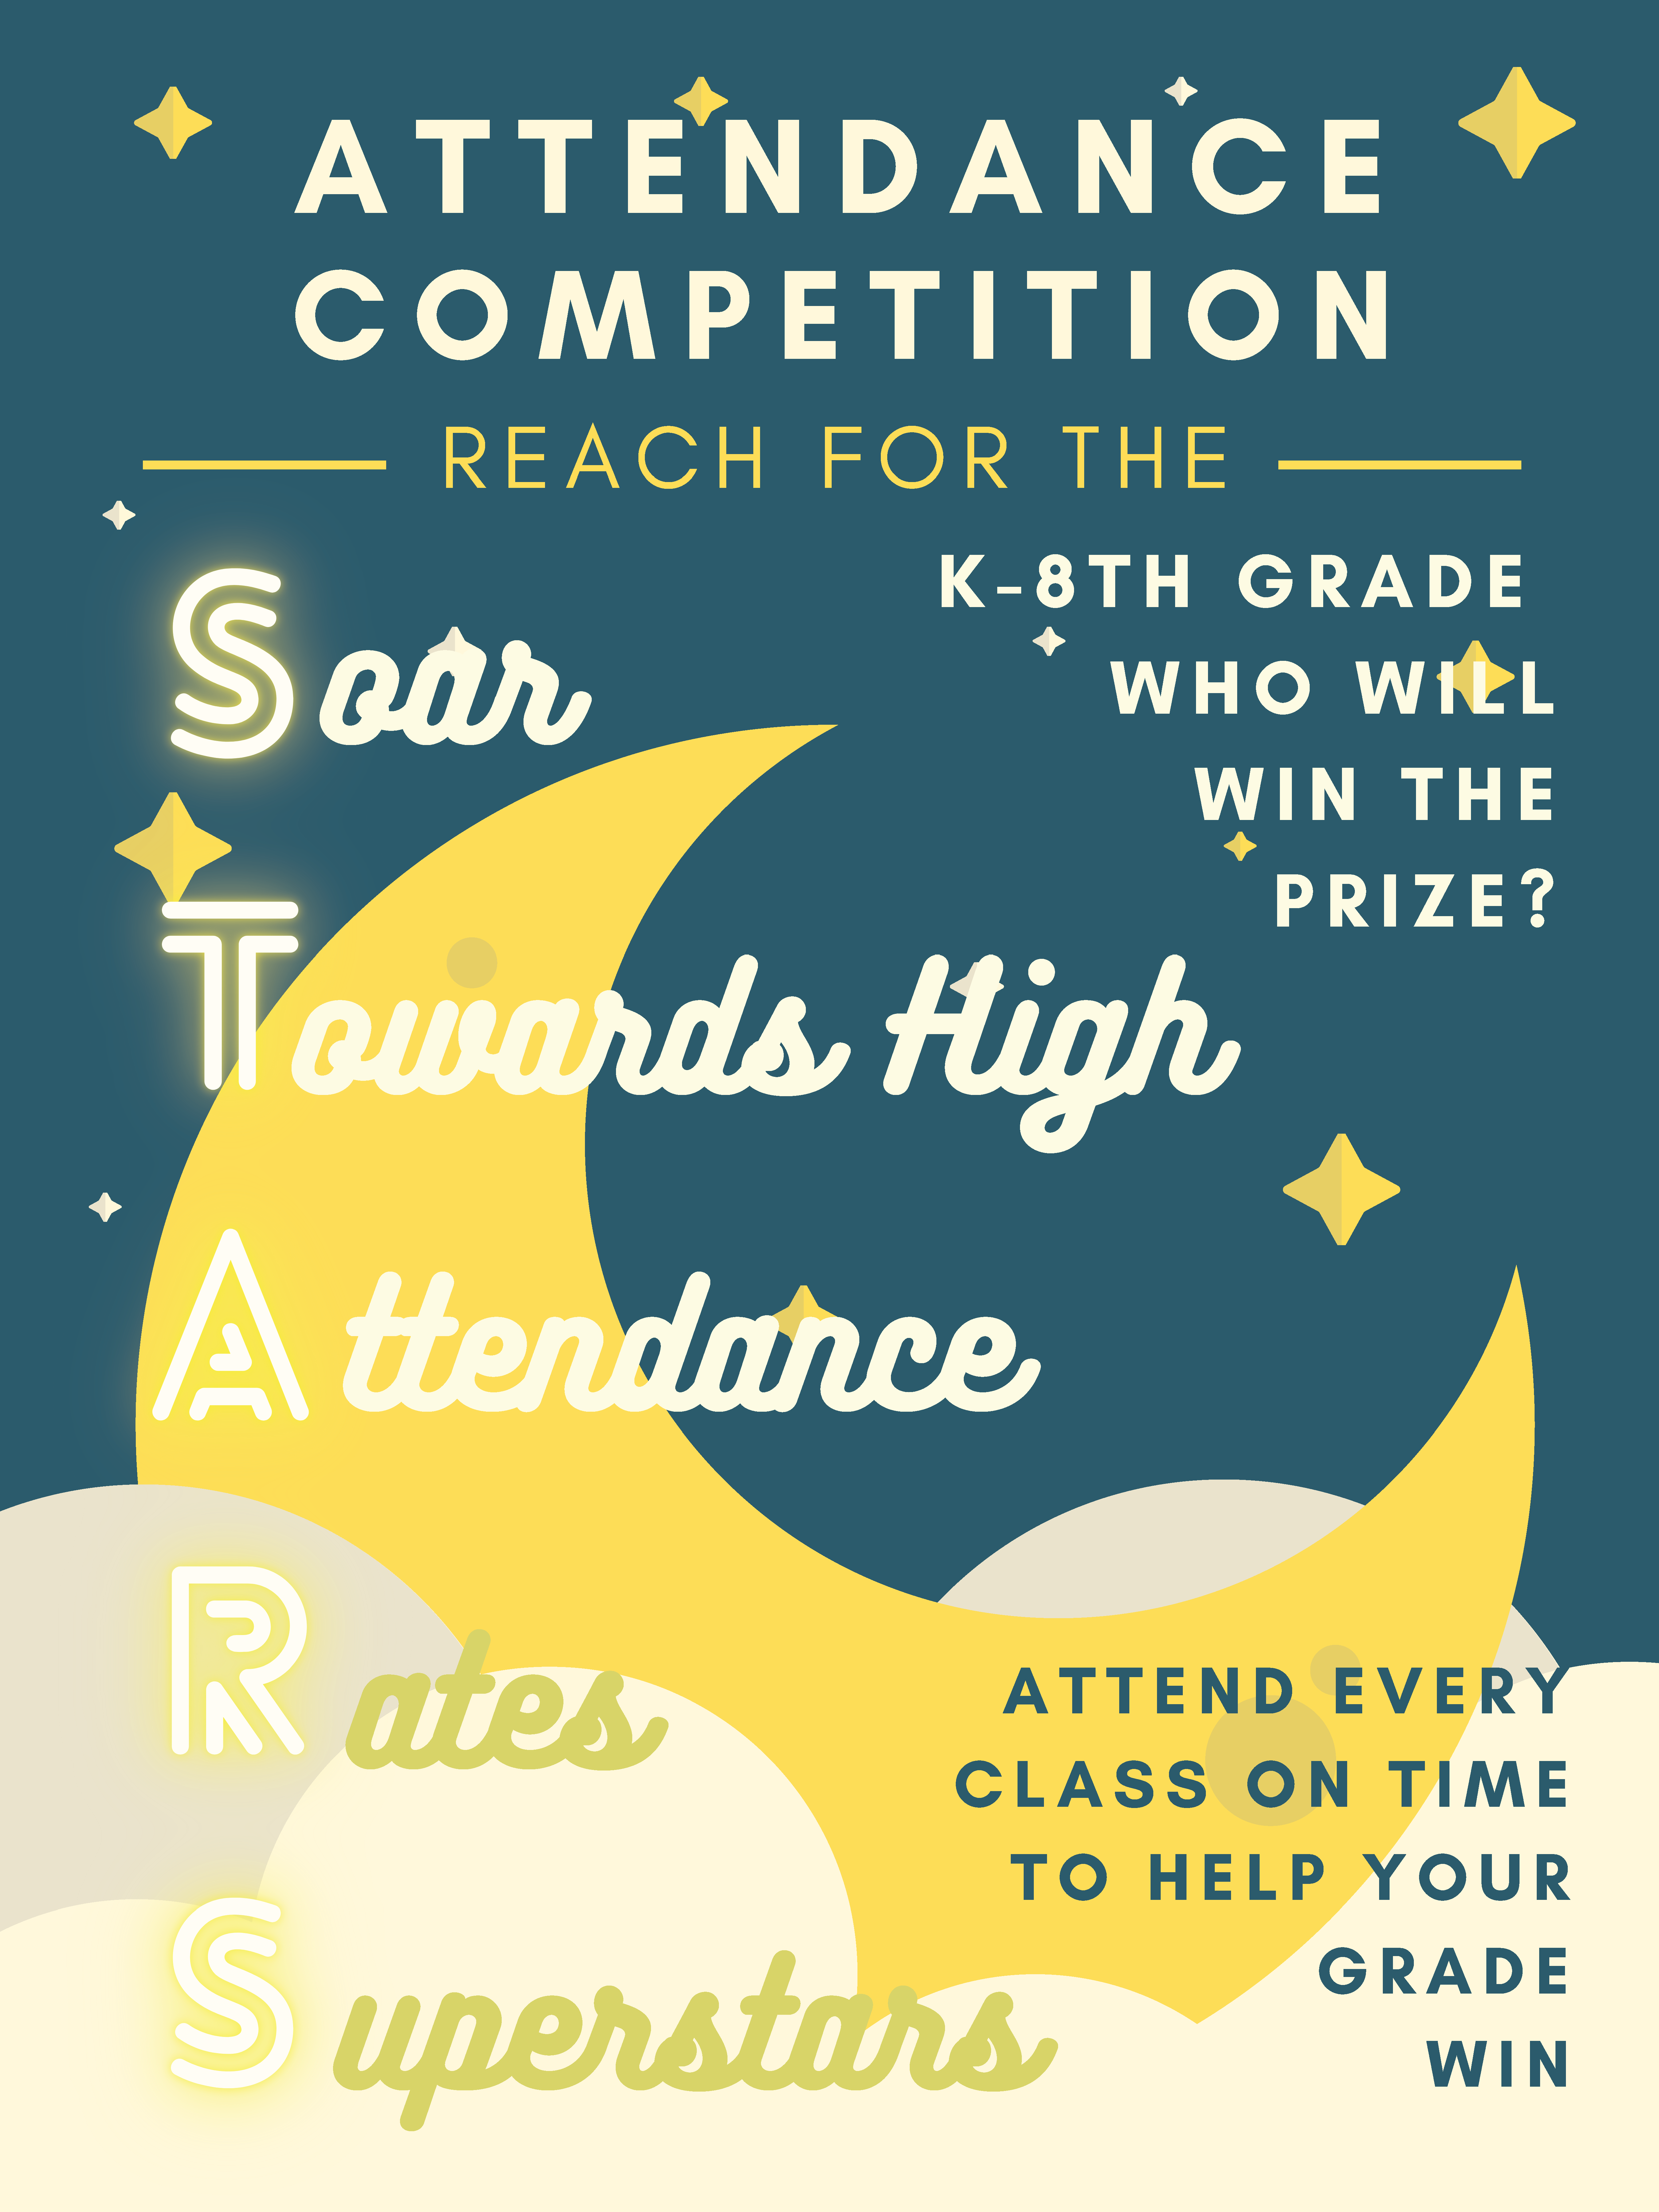 An image of the K-8th Grade Attendance Competition flyer.